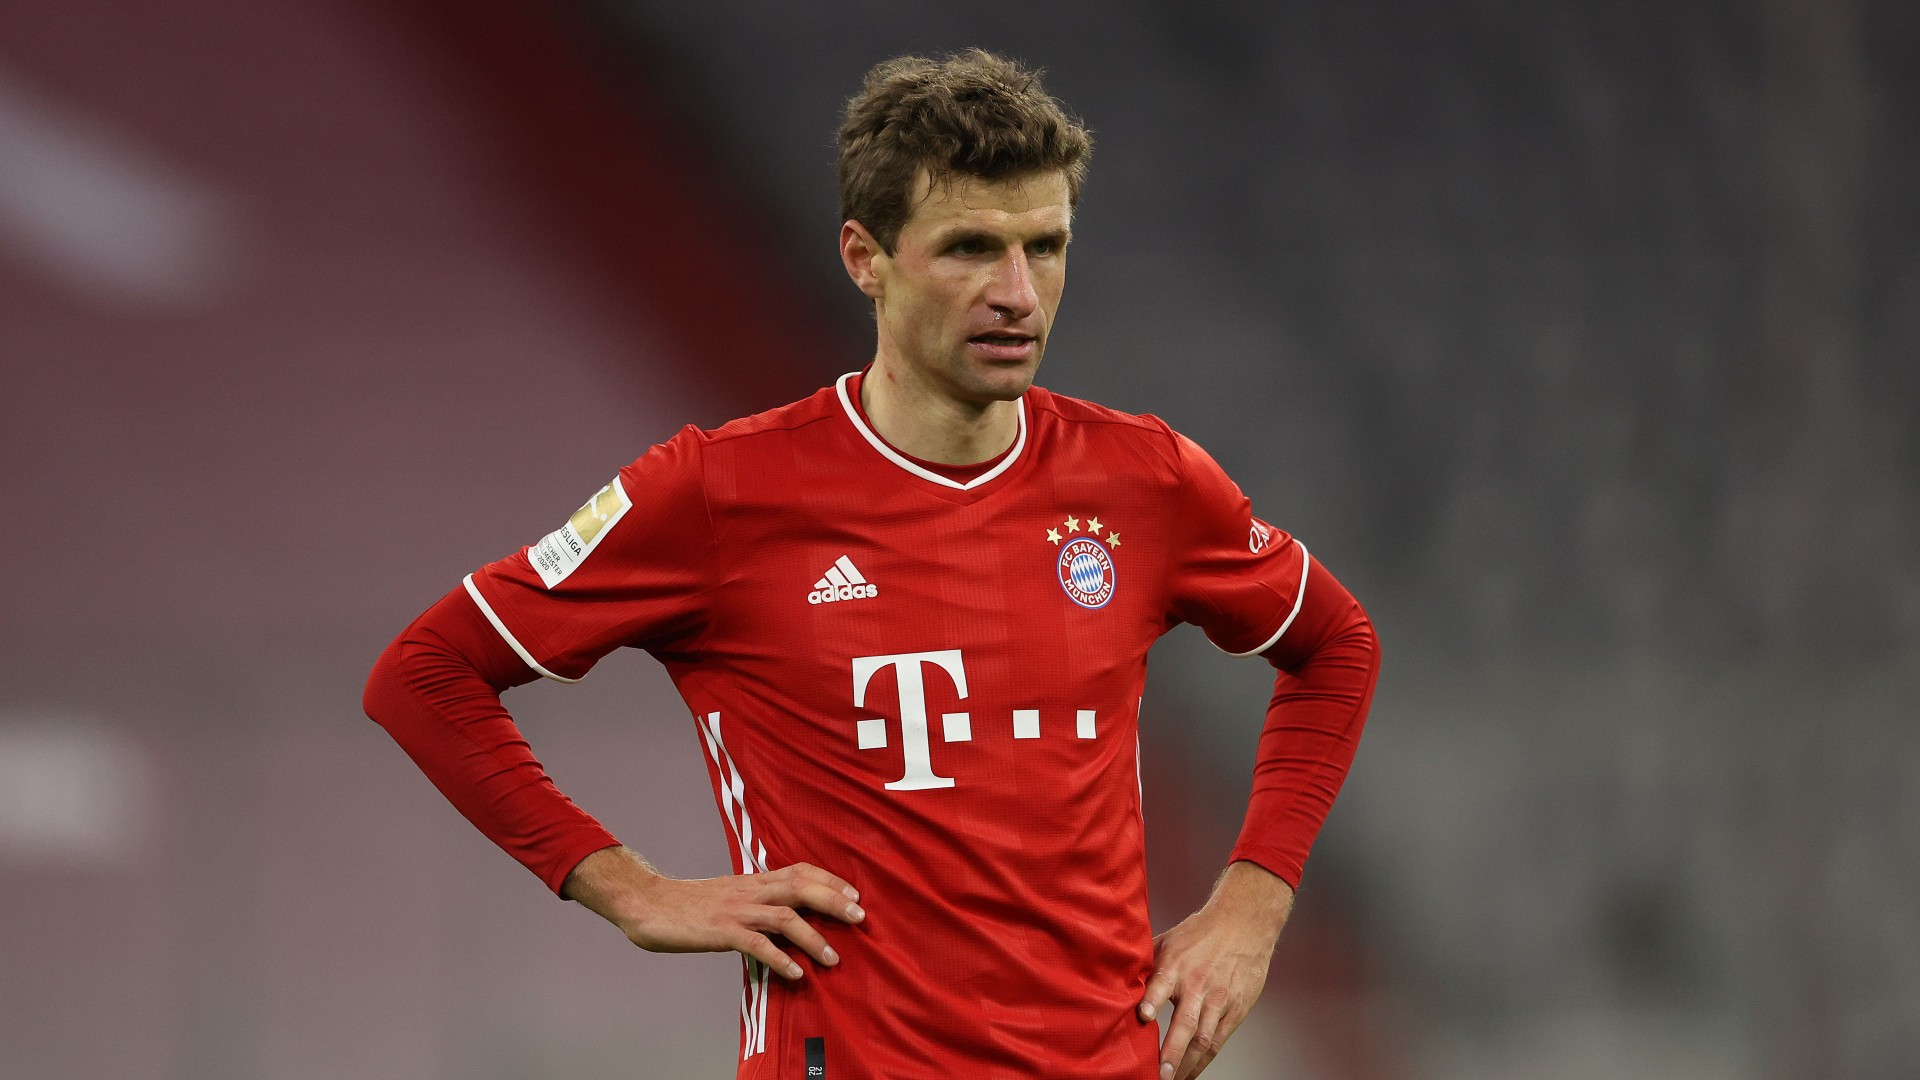 Bayern's Muller tests positive for Covid-19 ahead of Club World Cup final